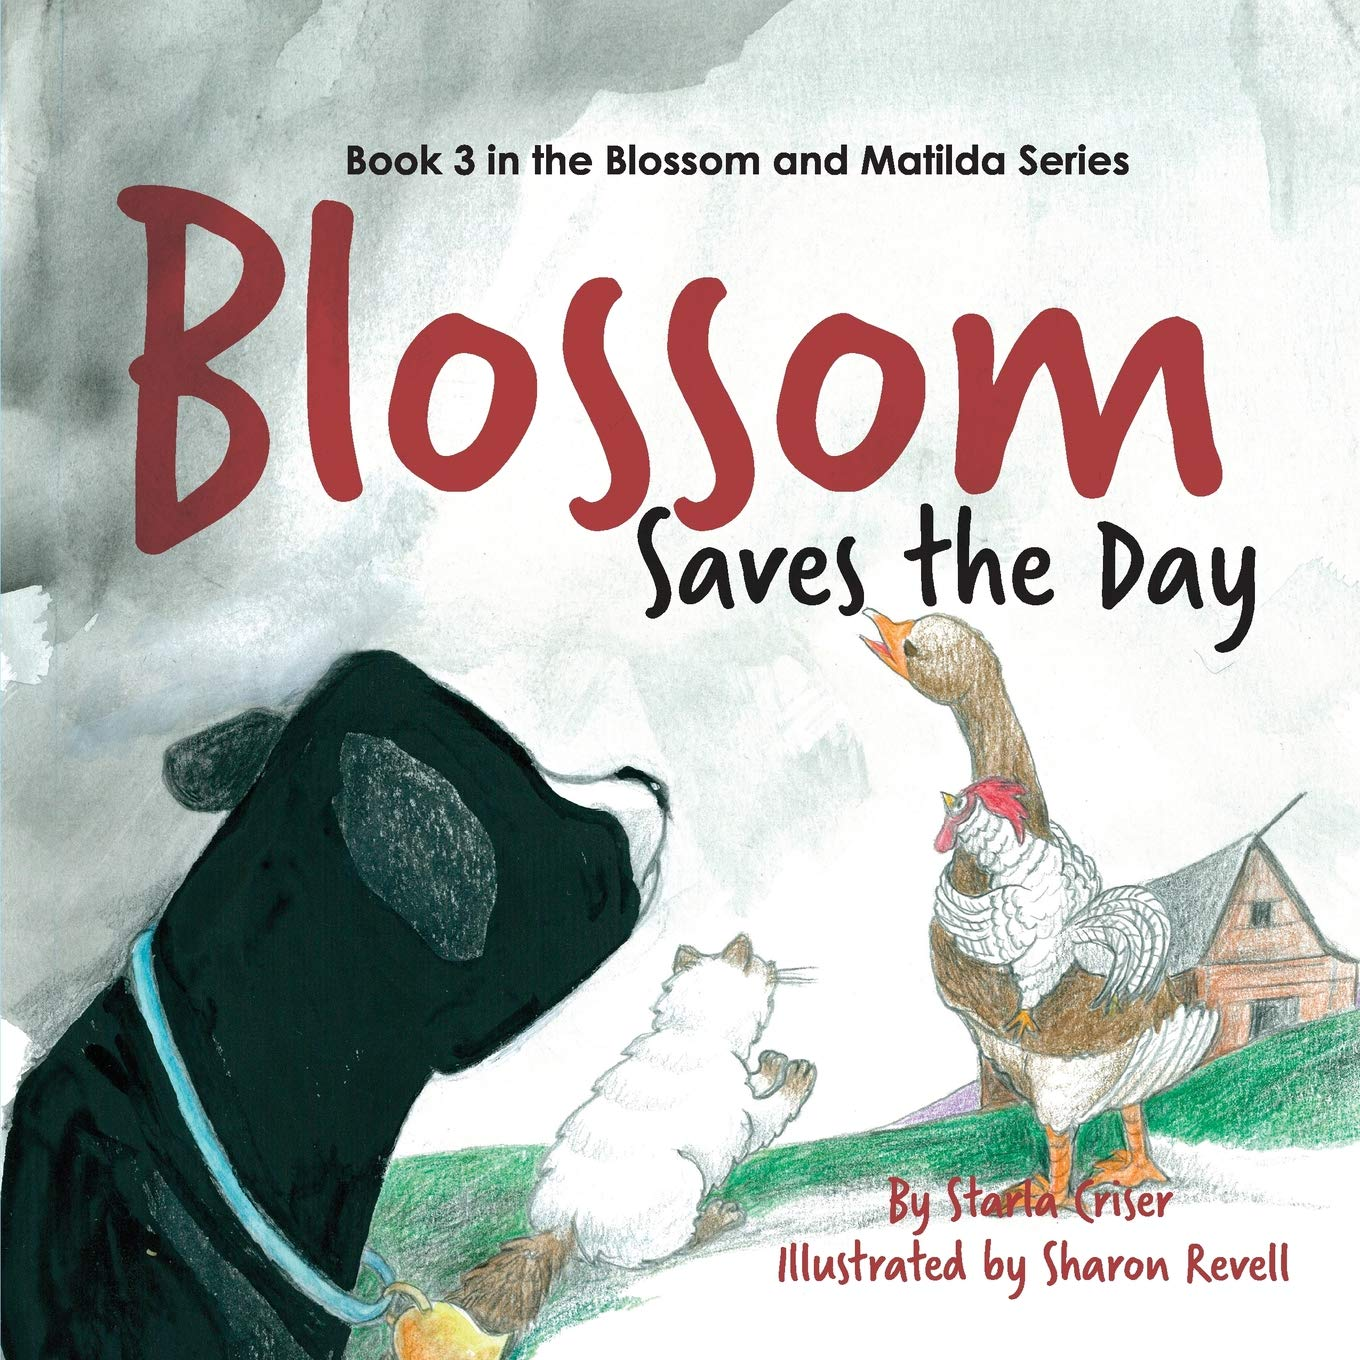 Blossom Saves the Day: Book 3 in the Blossom and Matilda Series (Volume 3) pdf